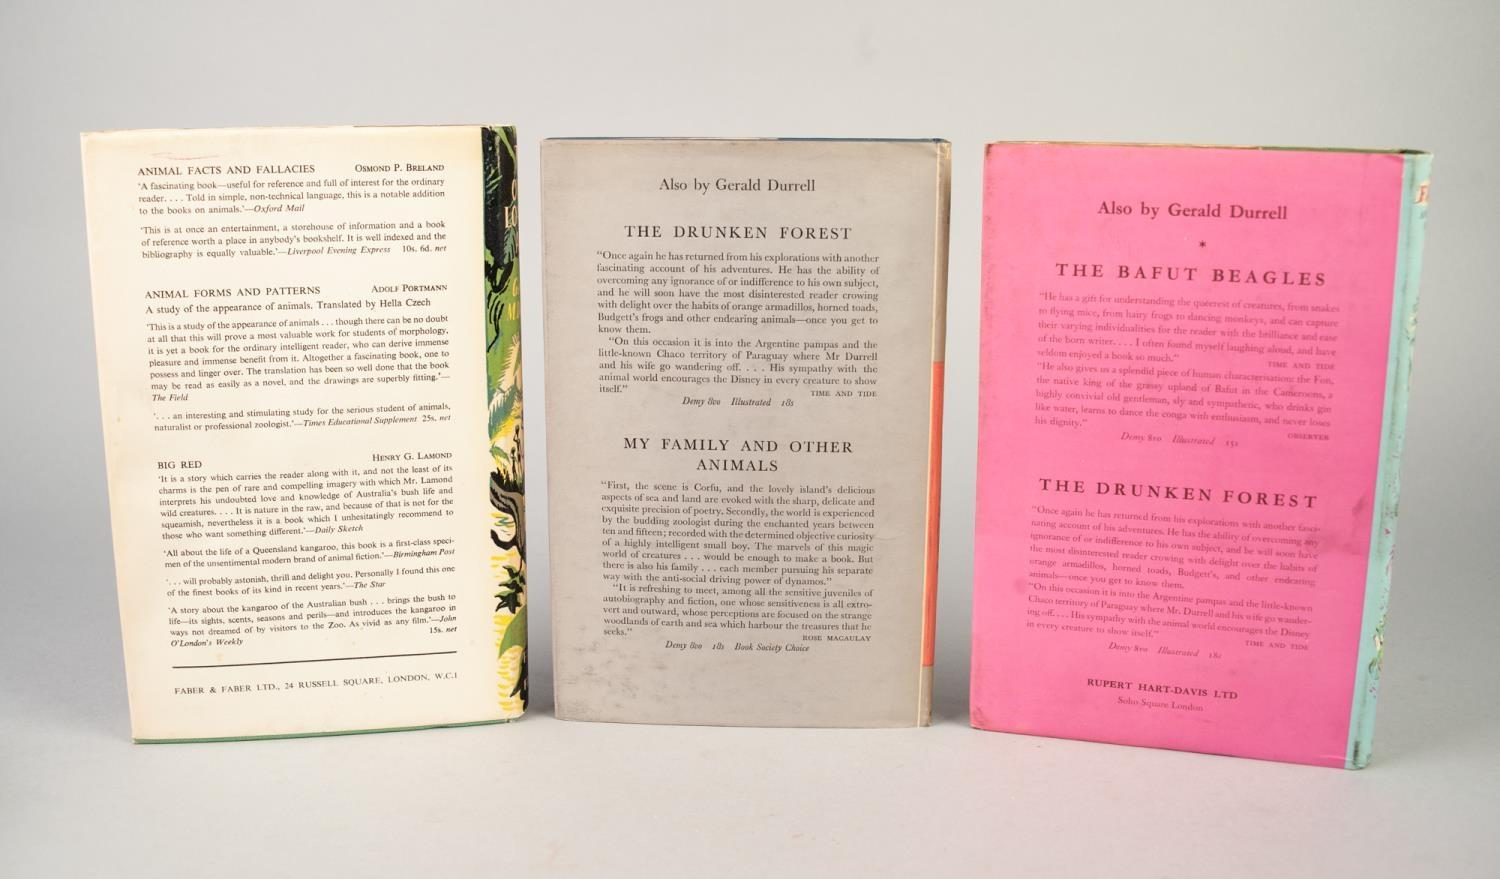 Lot 53 - GERALD DURRELL, MY FAMILY, PUBLISHED RUPERT HART DAVIS, 1956, 1st EDITION, SIGNED BY THE AUTHORS TO